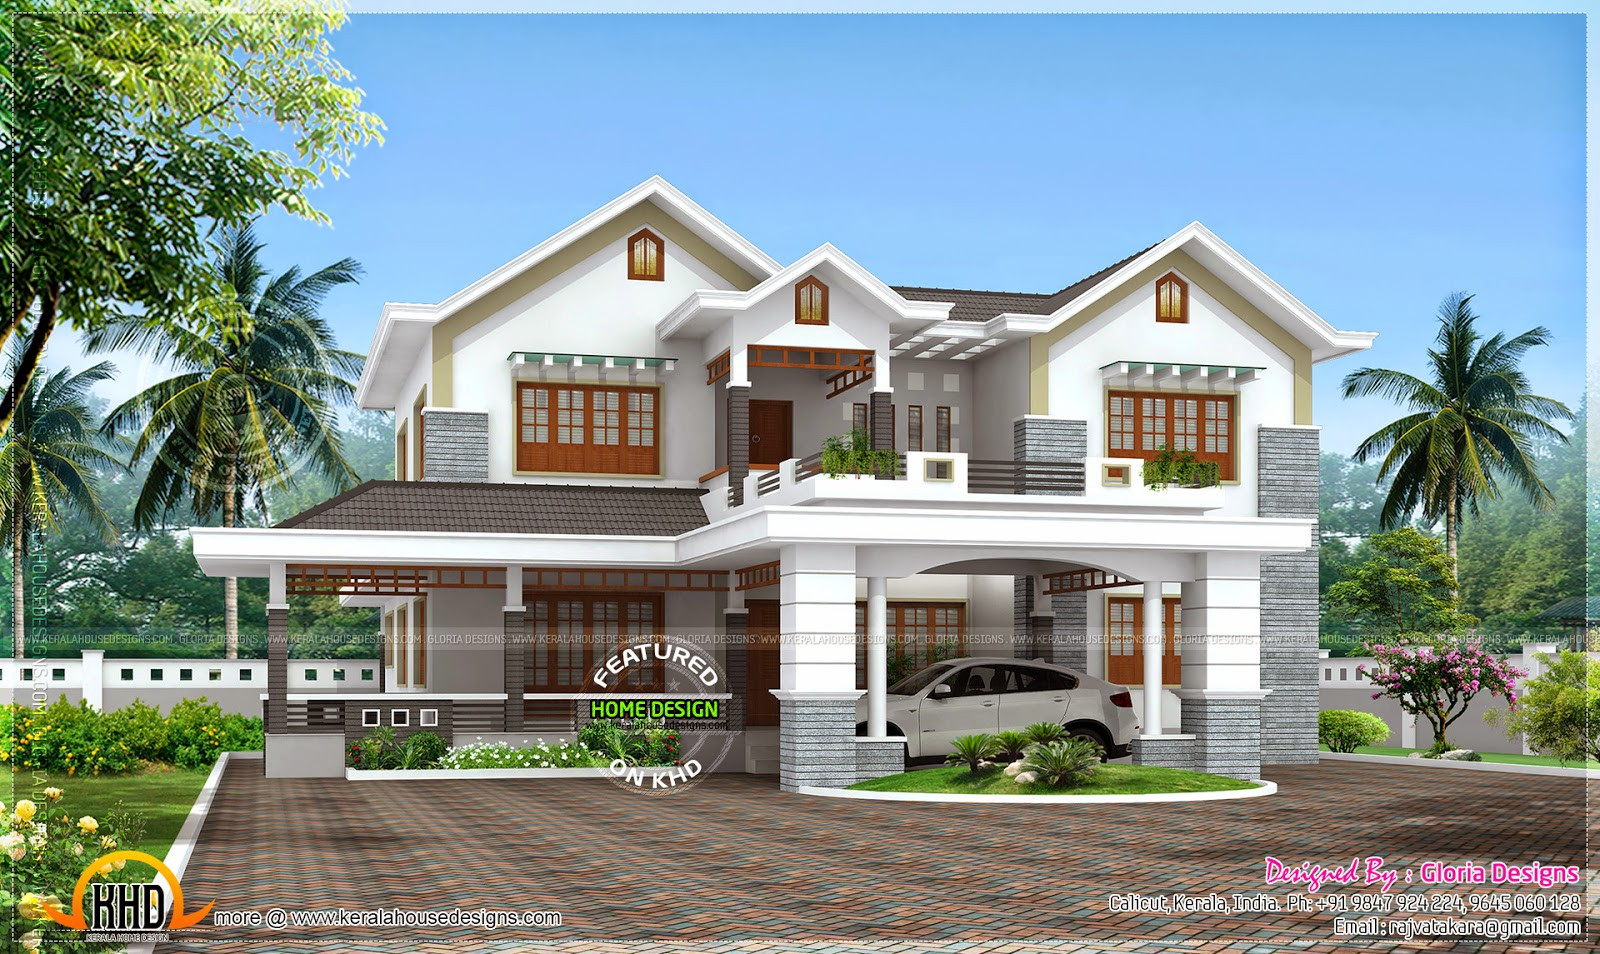 News and article online may 2014 for Beautiful 4 bedroom house designs